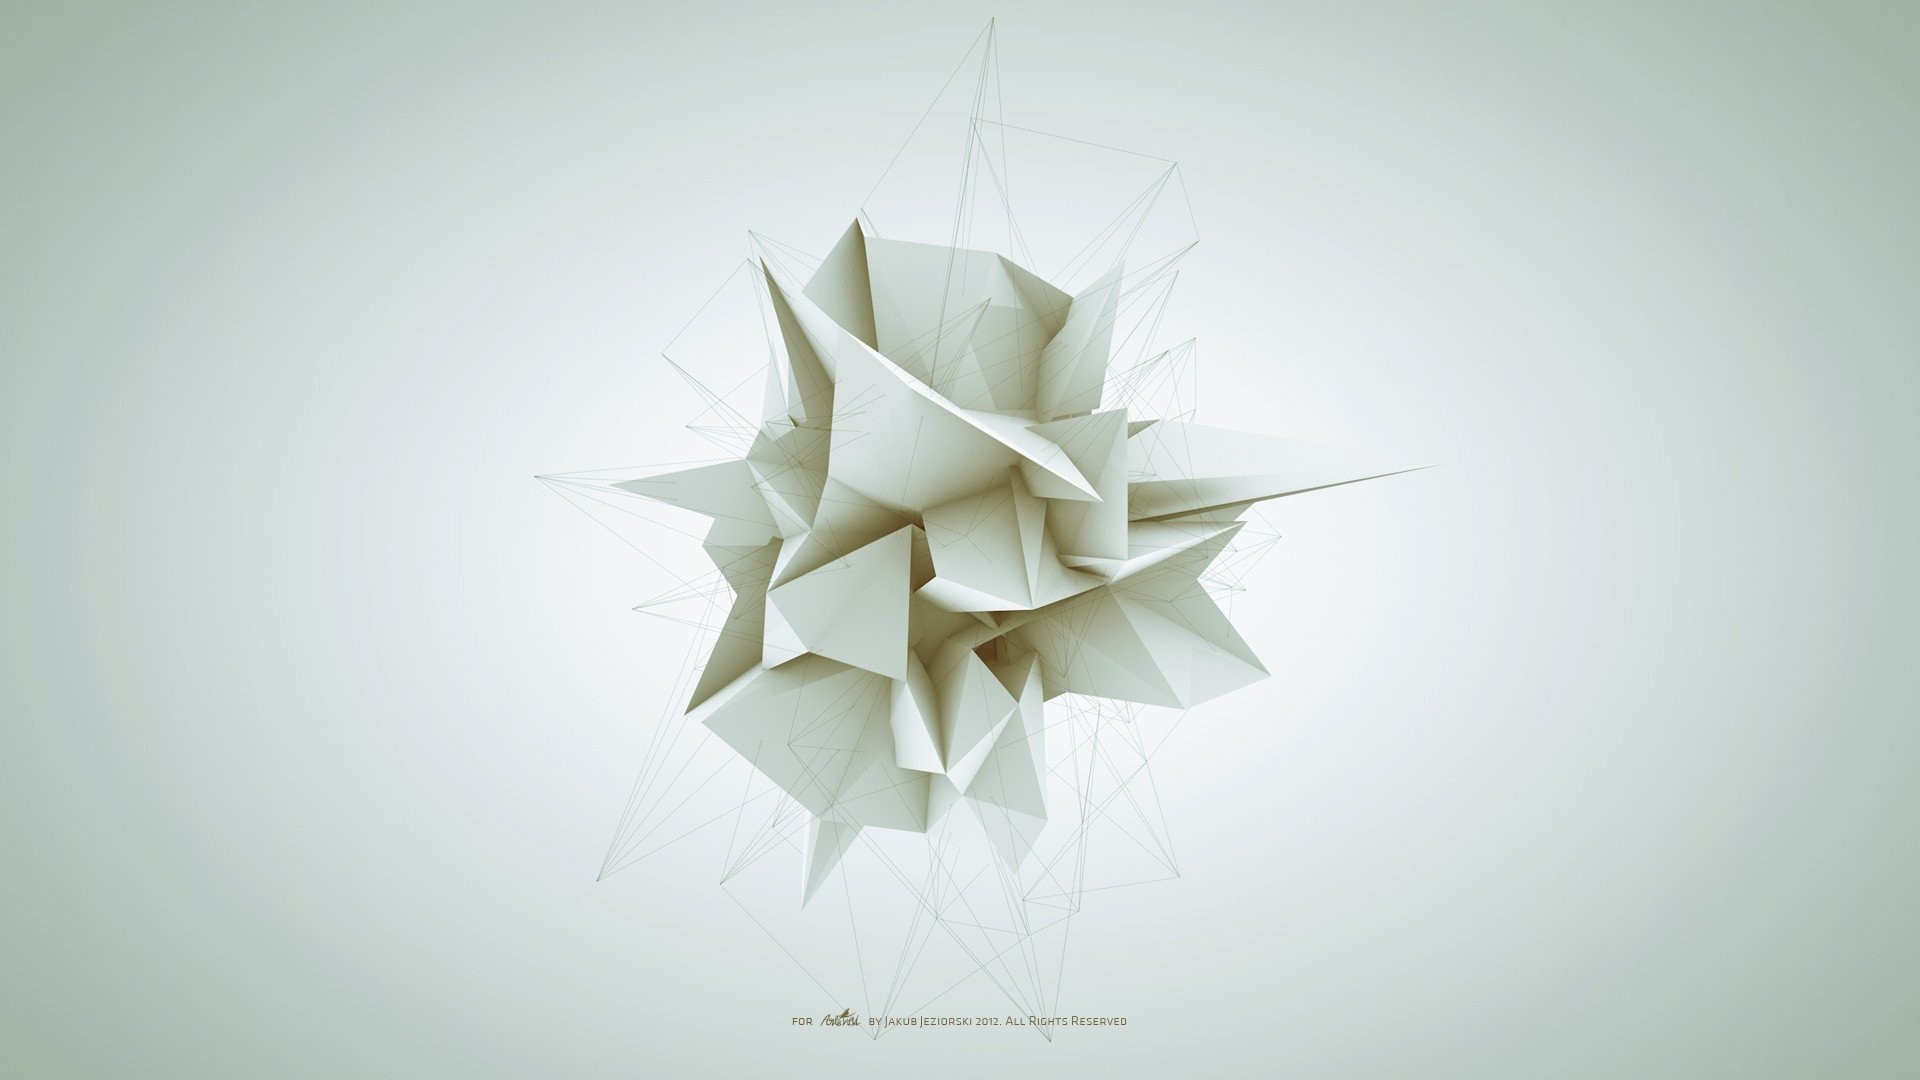 Abstract white geometry forms Adam Spizak wallpaper | | 238659 |  WallpaperUP